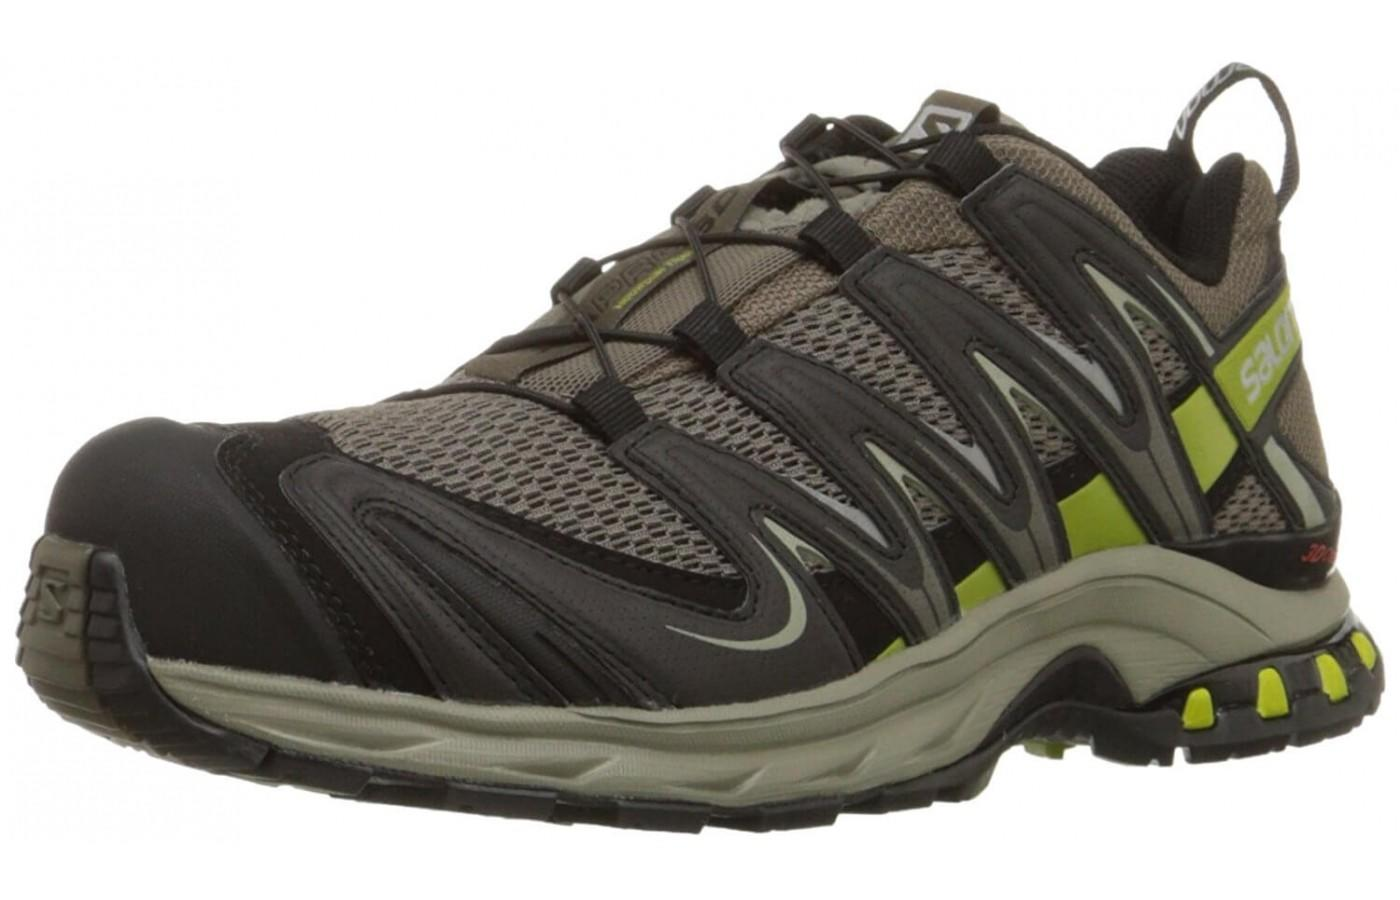 The Salomon Xa Pro 3D M+ as shown from the front/side